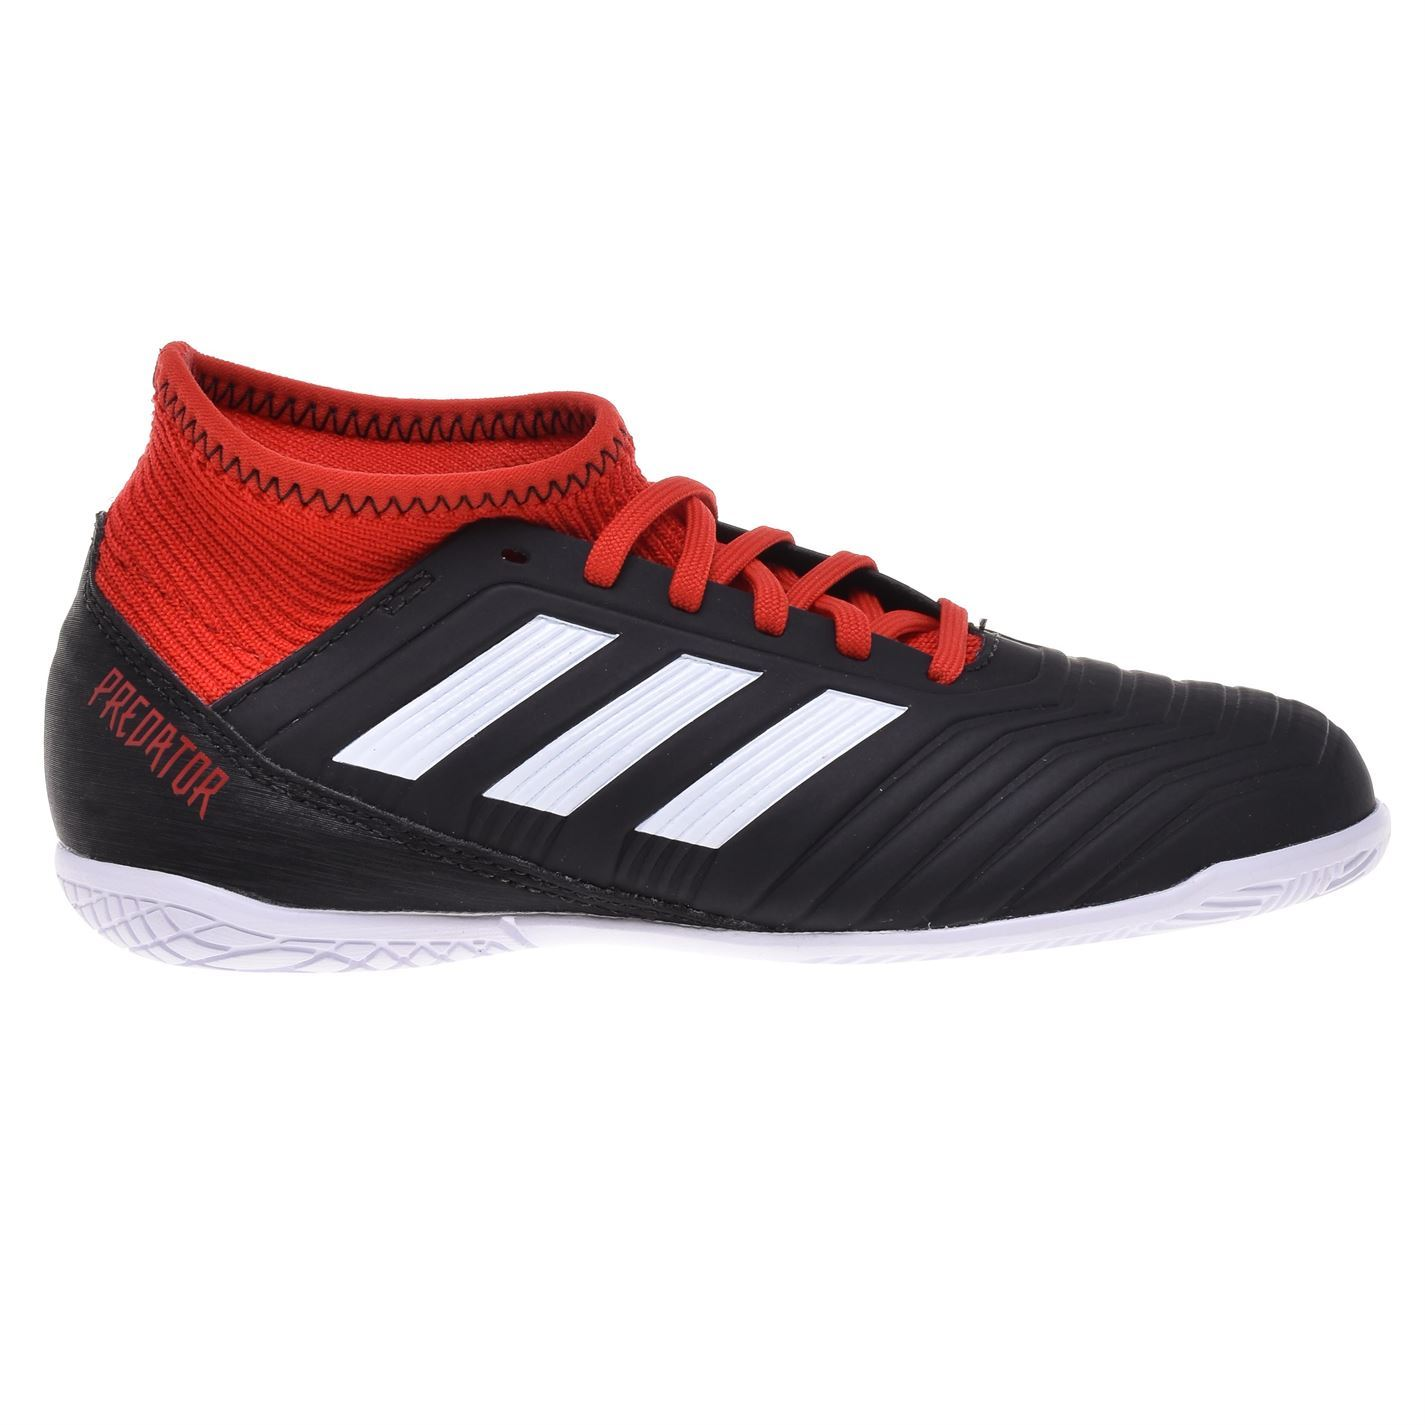 adidas formateurs price price formateurs manchester manchester adidas 08wPnkO